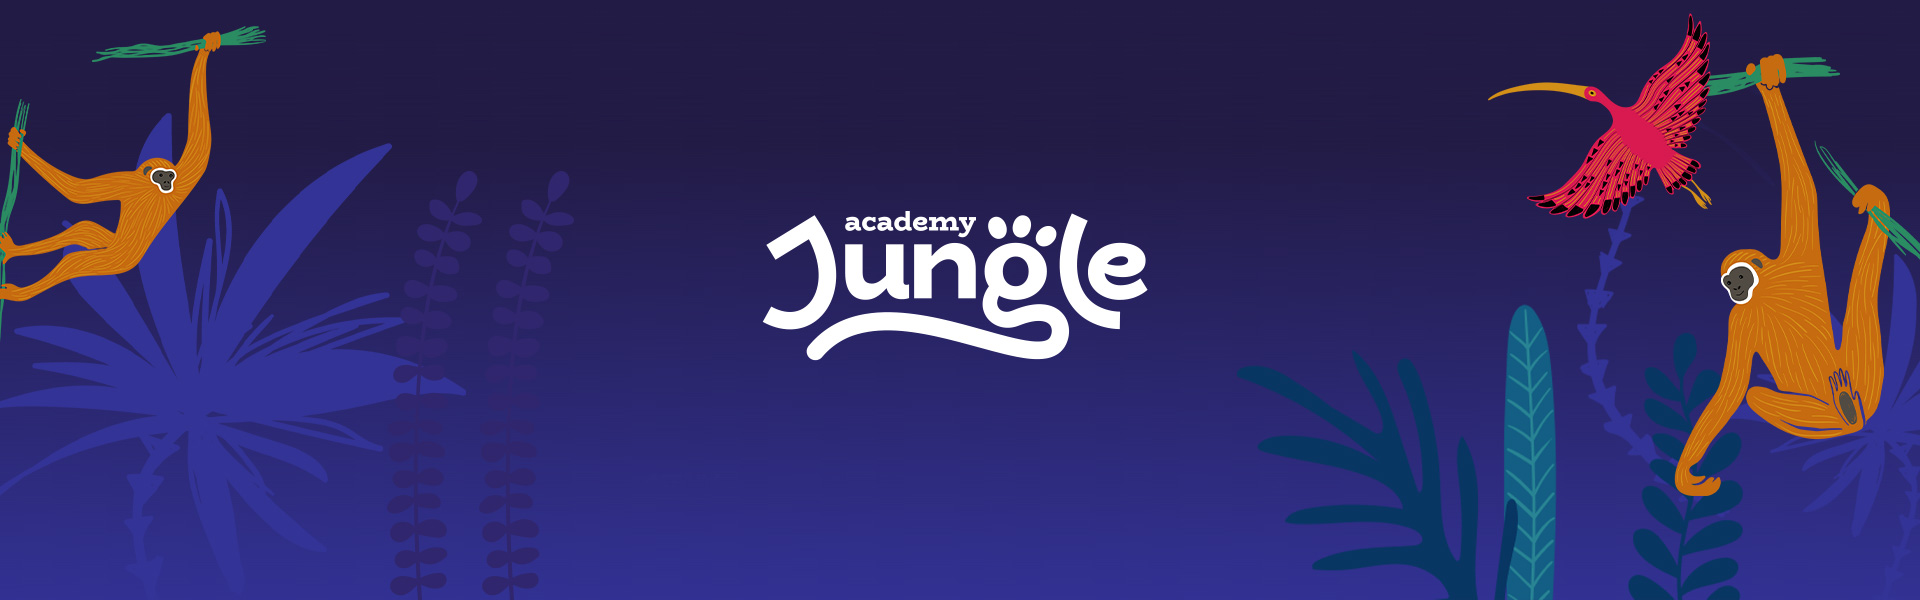 Jungle Academy—cover